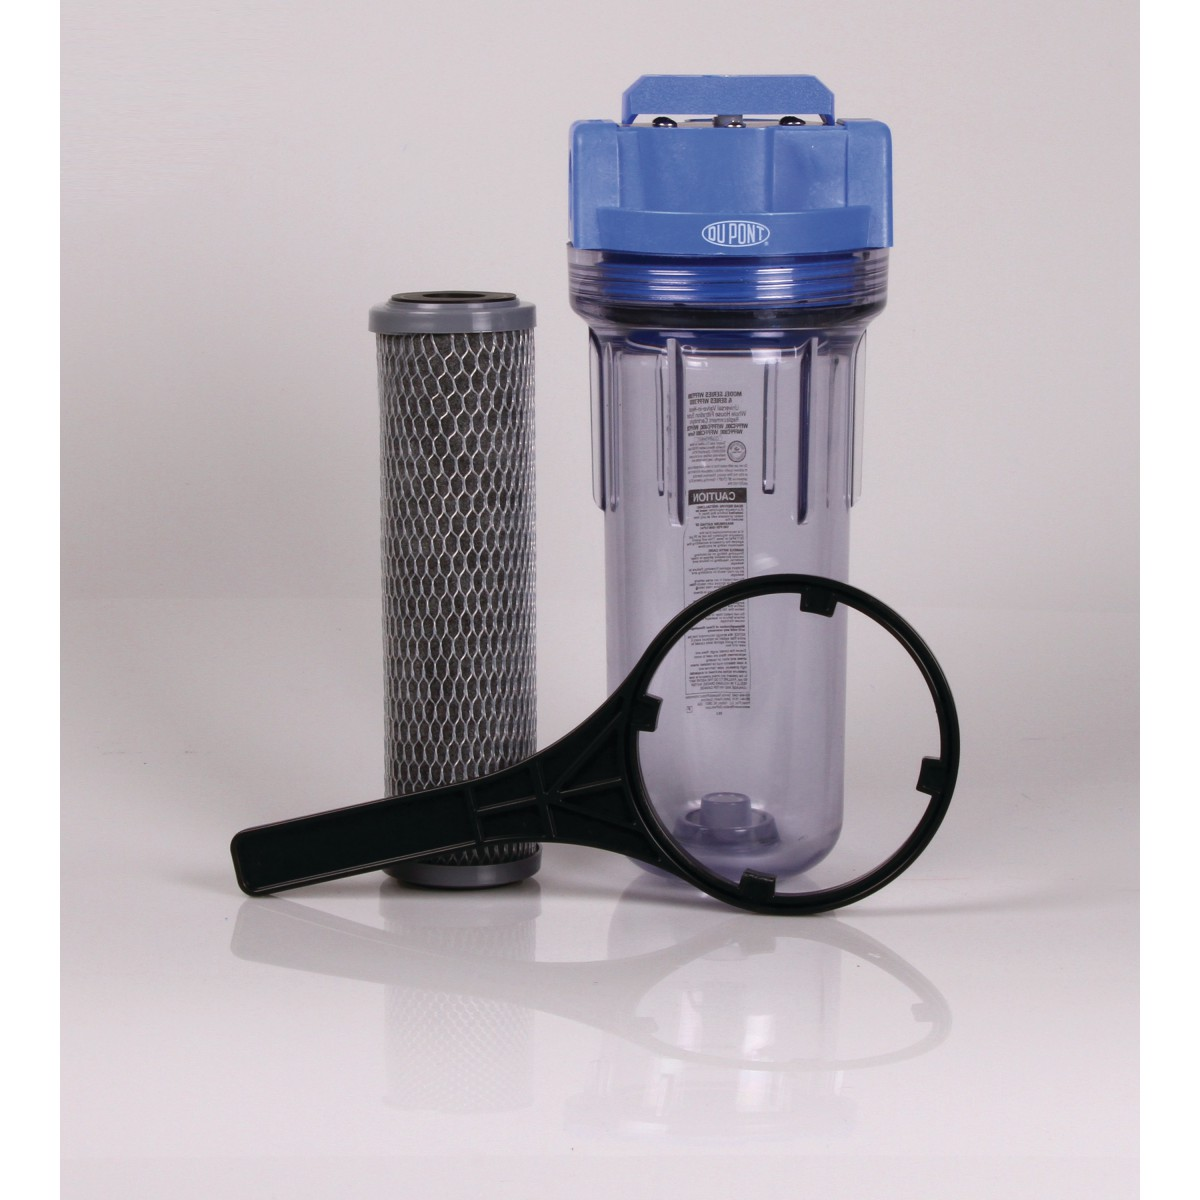 Wfpf38001c Dupont Universal Whole House Water Filtration